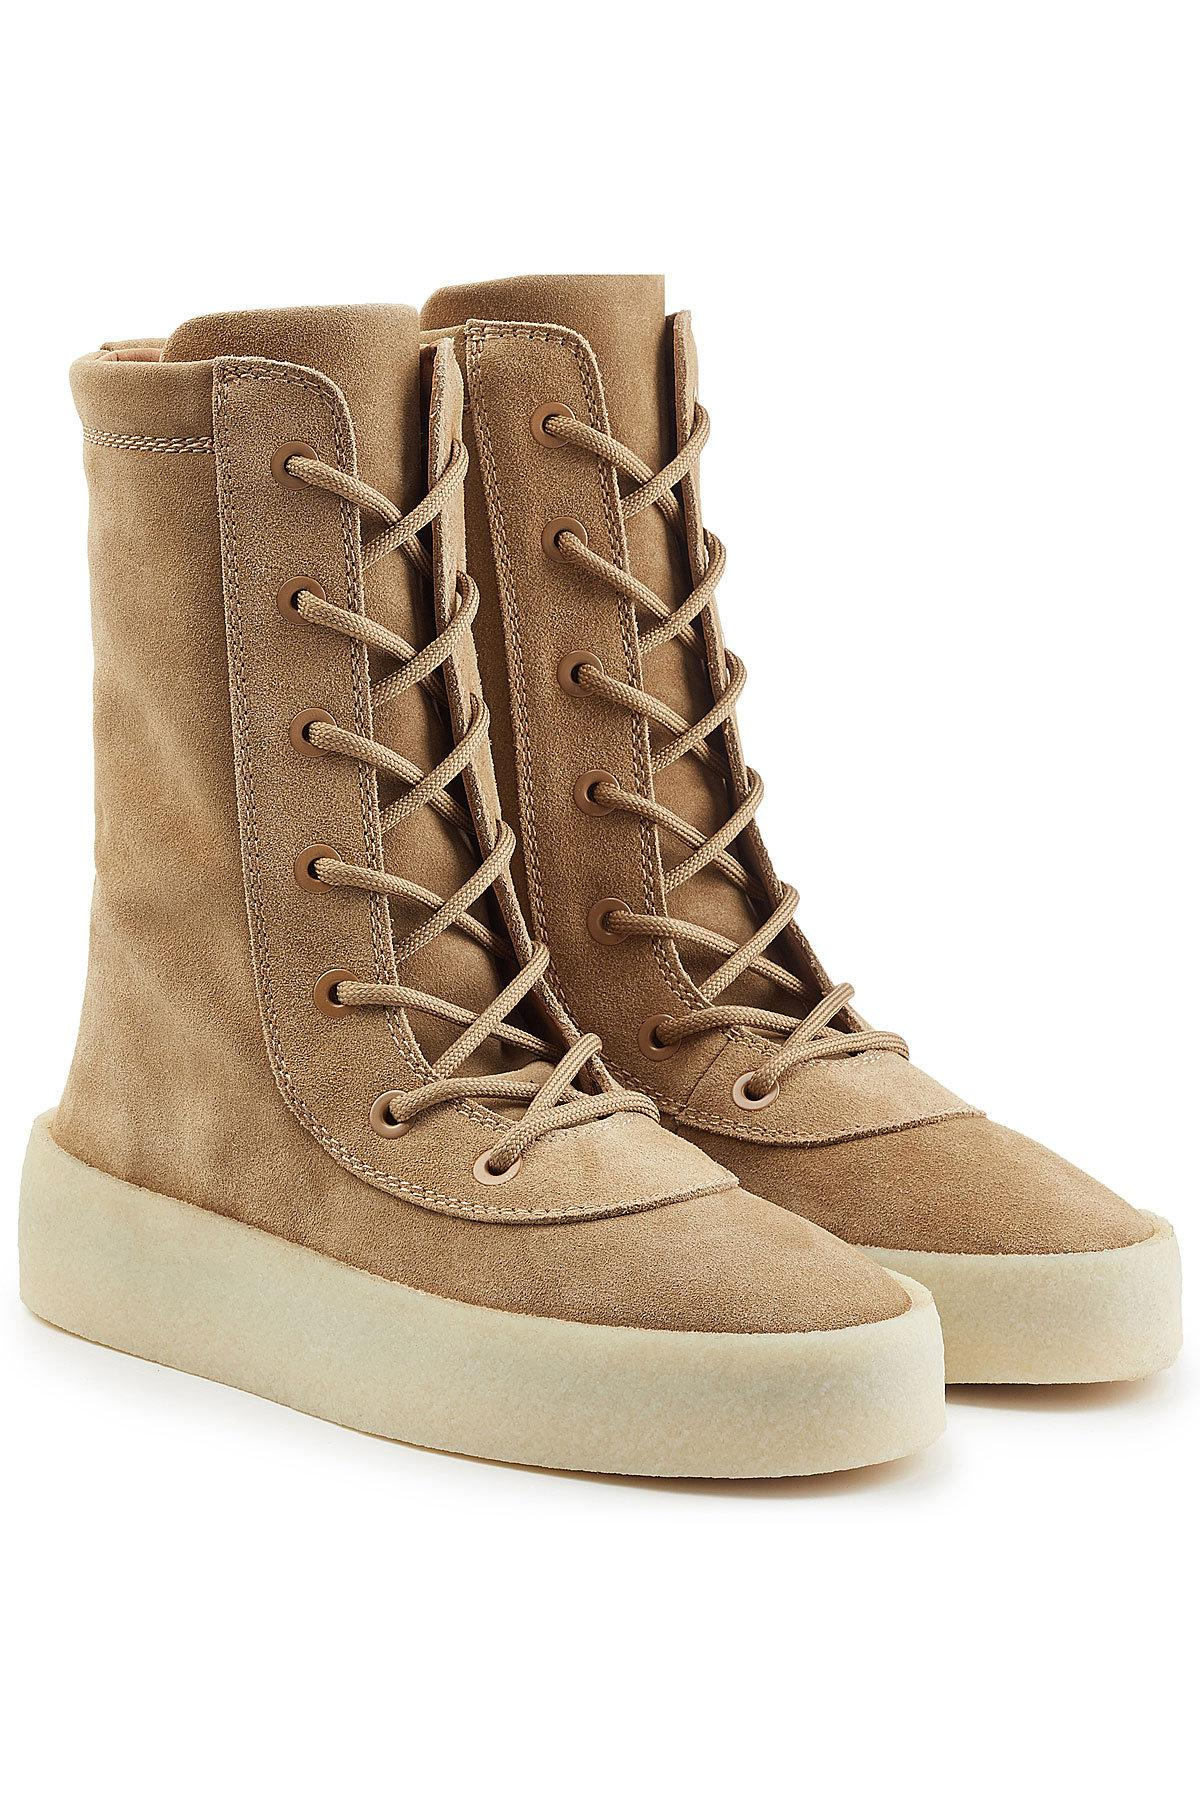 4f9246024ef Lyst - Yeezy Suede Boots for Men